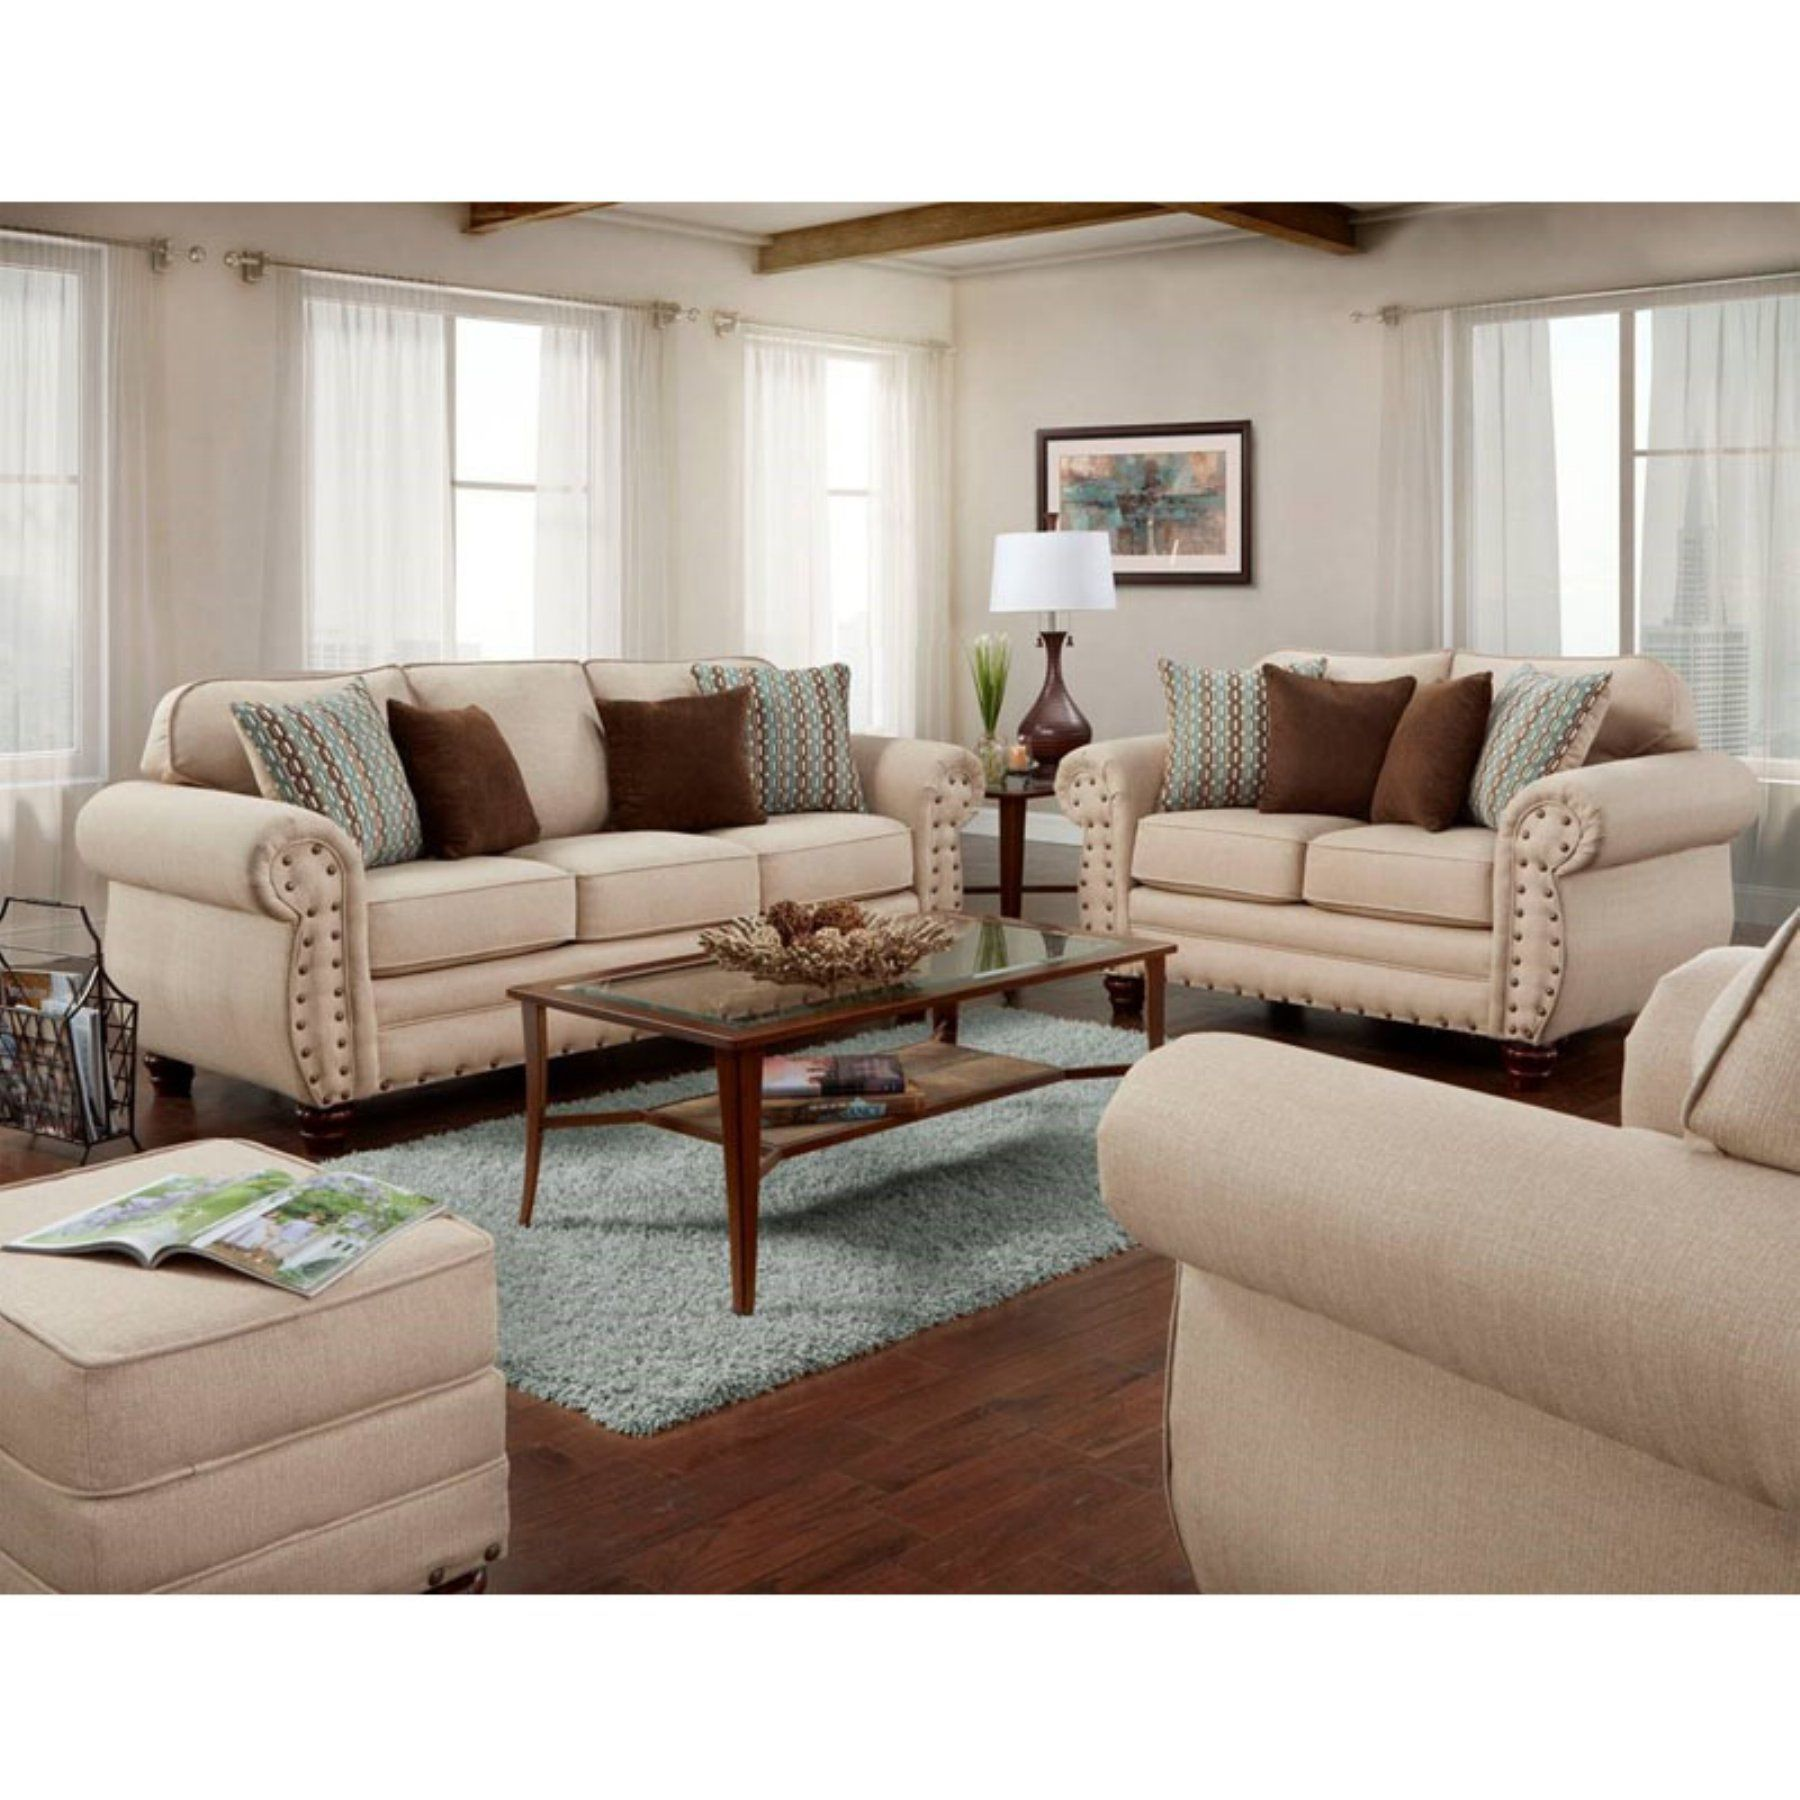 Leather Living Room Furniture Sets How To Decorate A With Fireplace In The Middle American Classics Abington Sand 4 Piece Sofa Set 2019 B9900 Abk